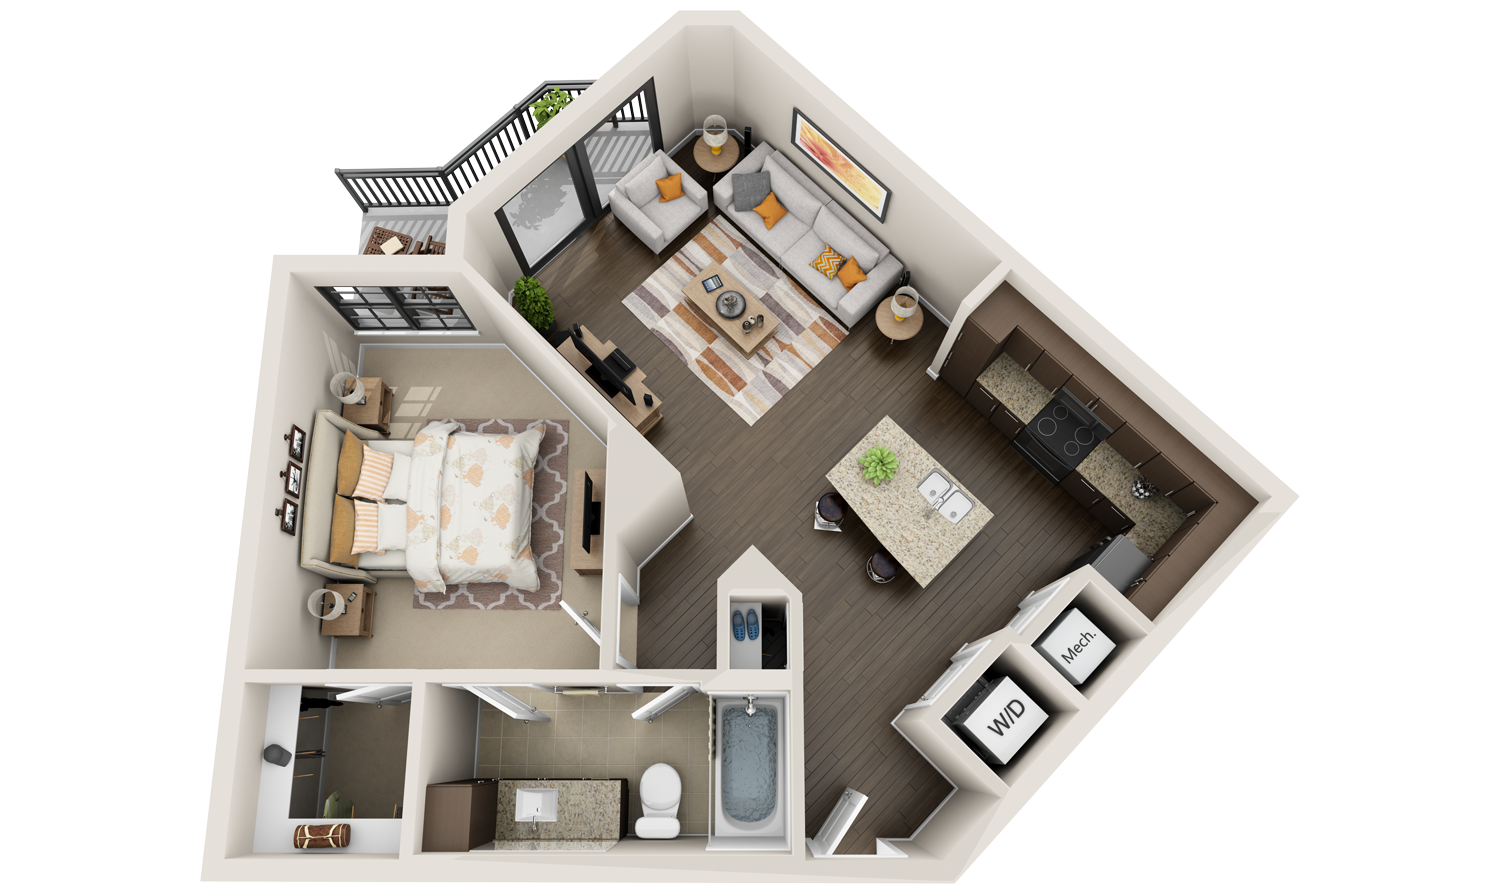 Best 3d floor plans for apartments virtual tours we for One bedroom apartment designs plans